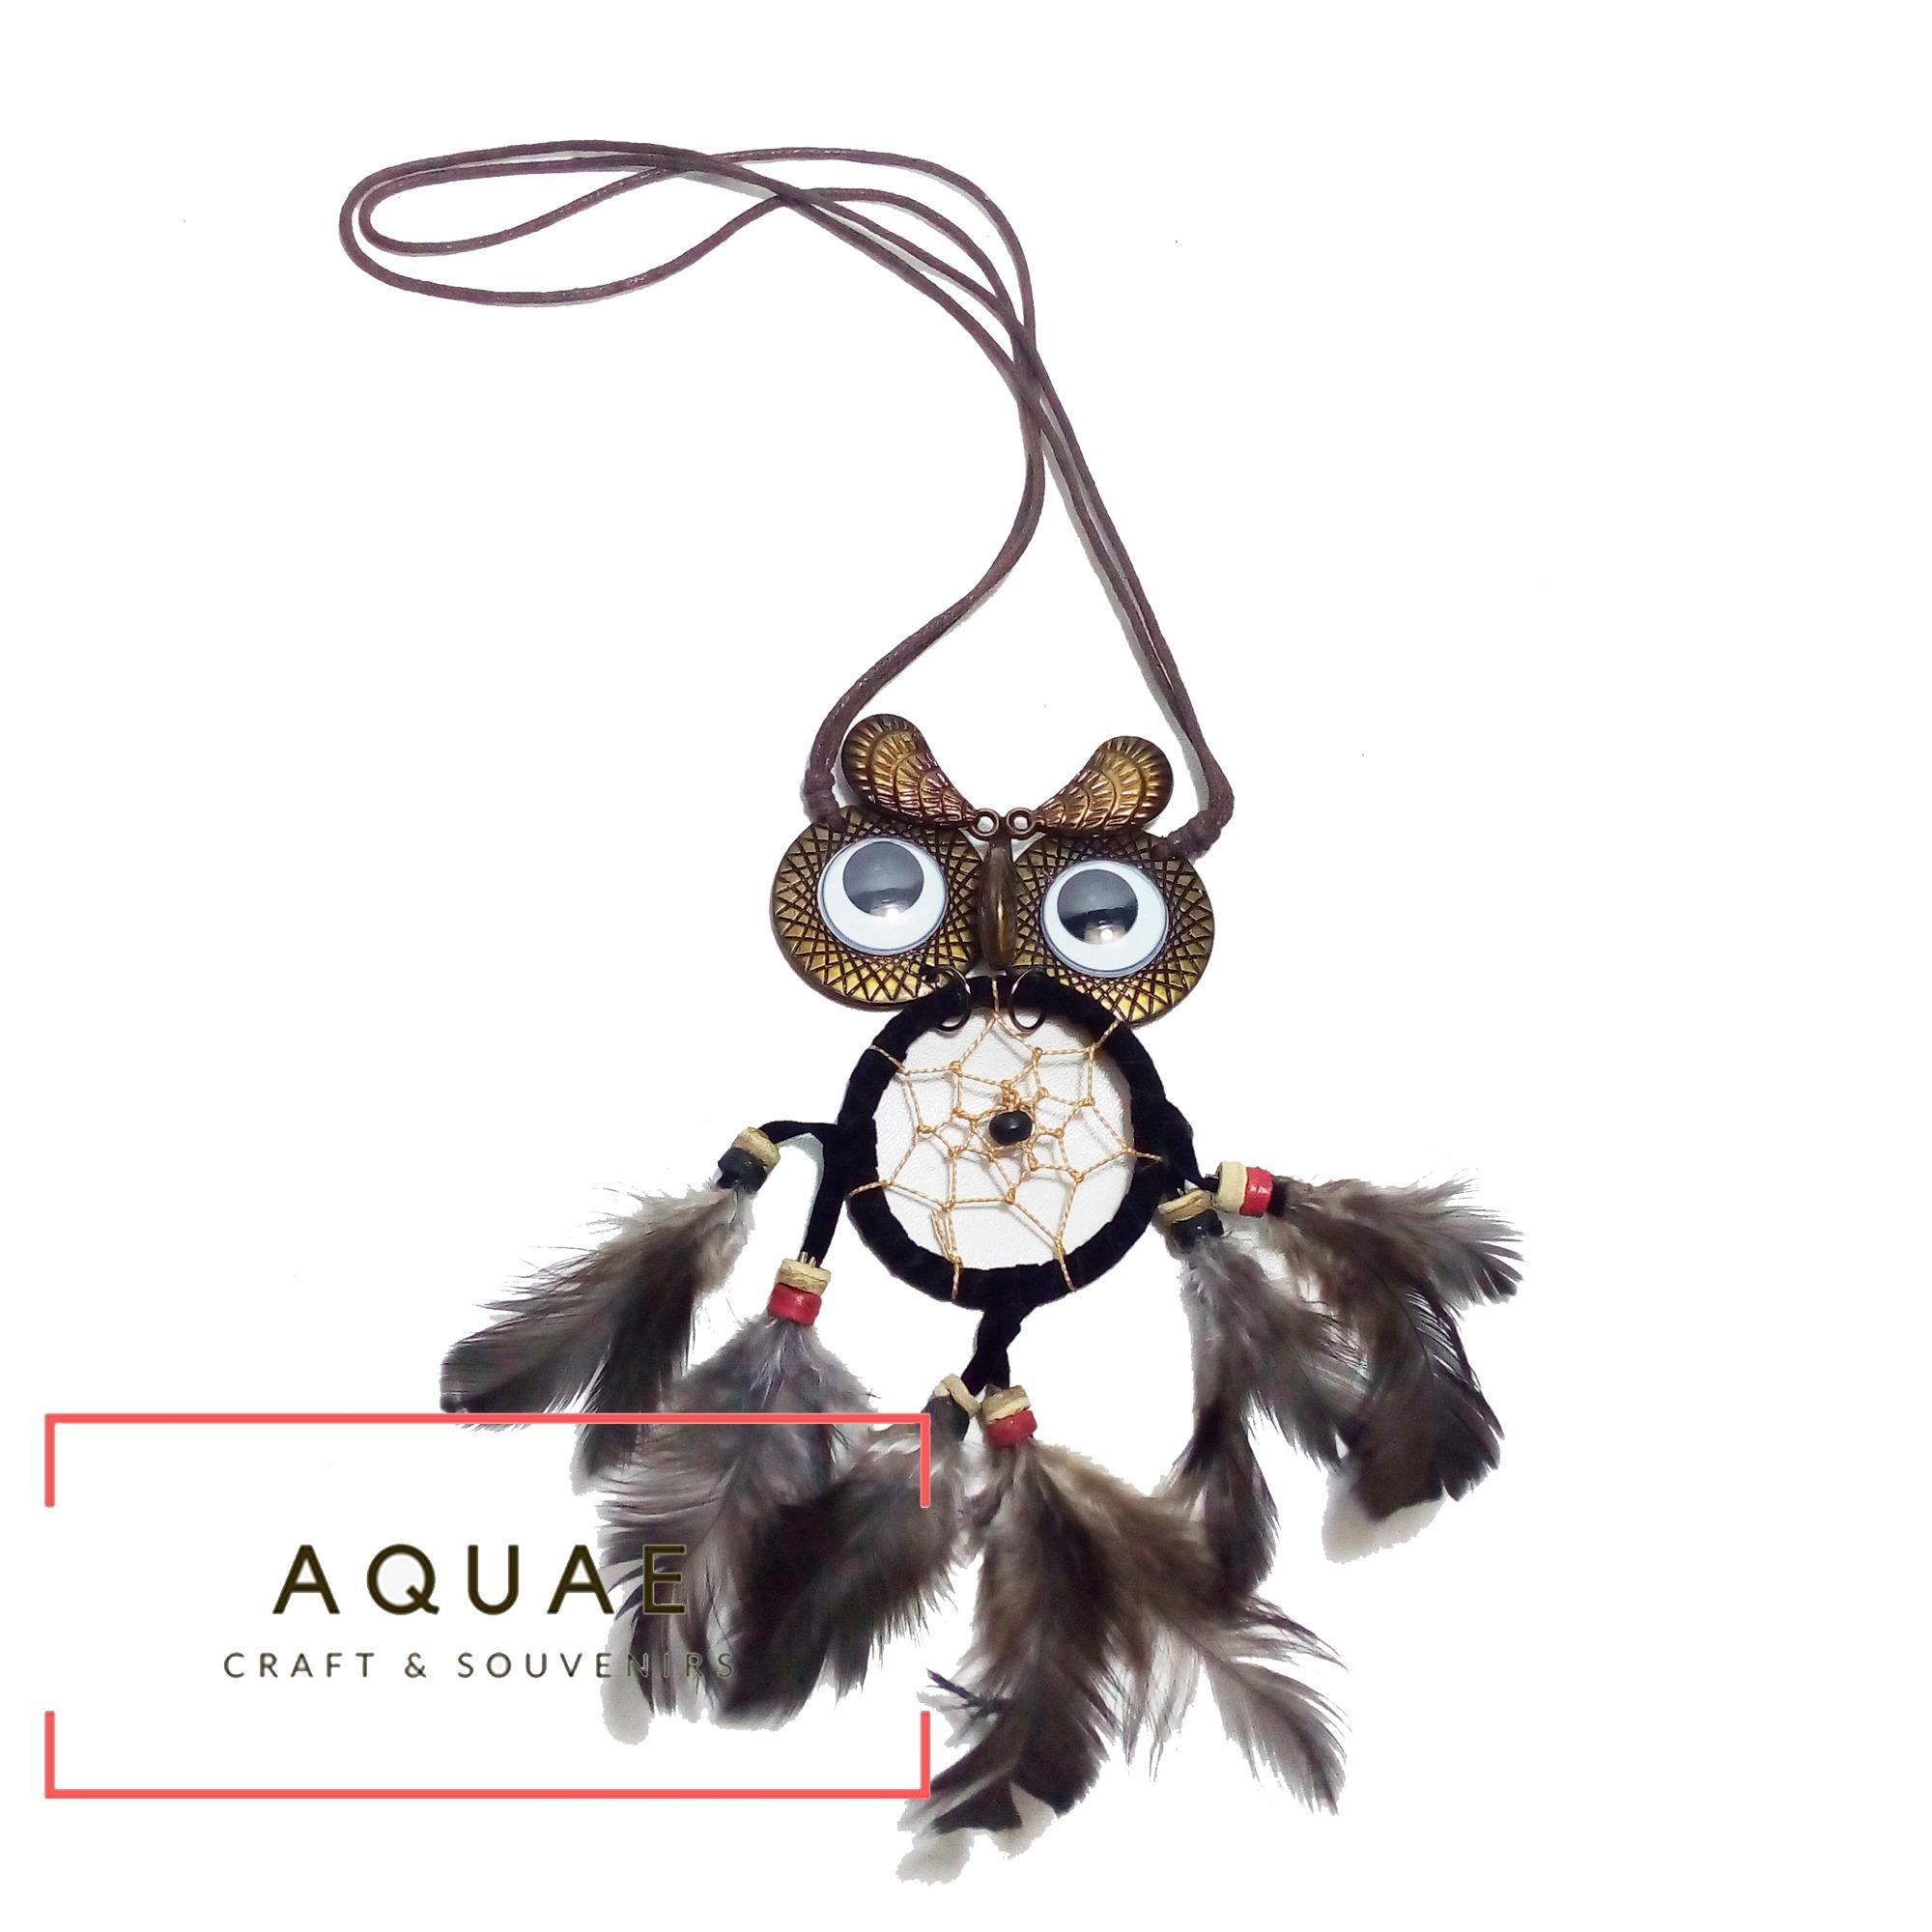 AQAUE - Aksesoris Kalung Wanita Model Dream Catcher